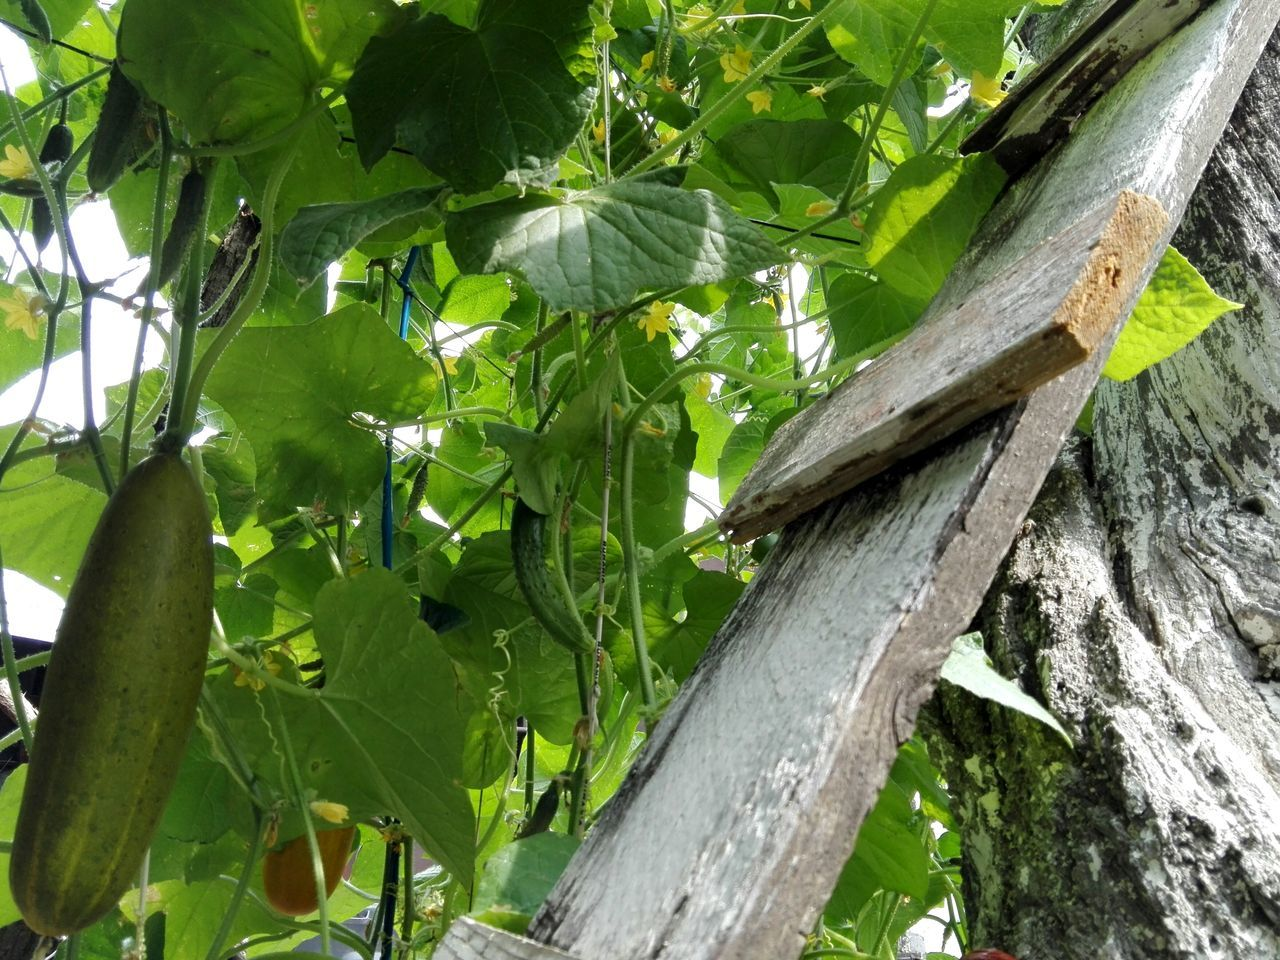 leaf, growth, green color, tree, no people, outdoors, nature, day, wood - material, plant, tree trunk, banana tree, branch, low angle view, close-up, beauty in nature, freshness